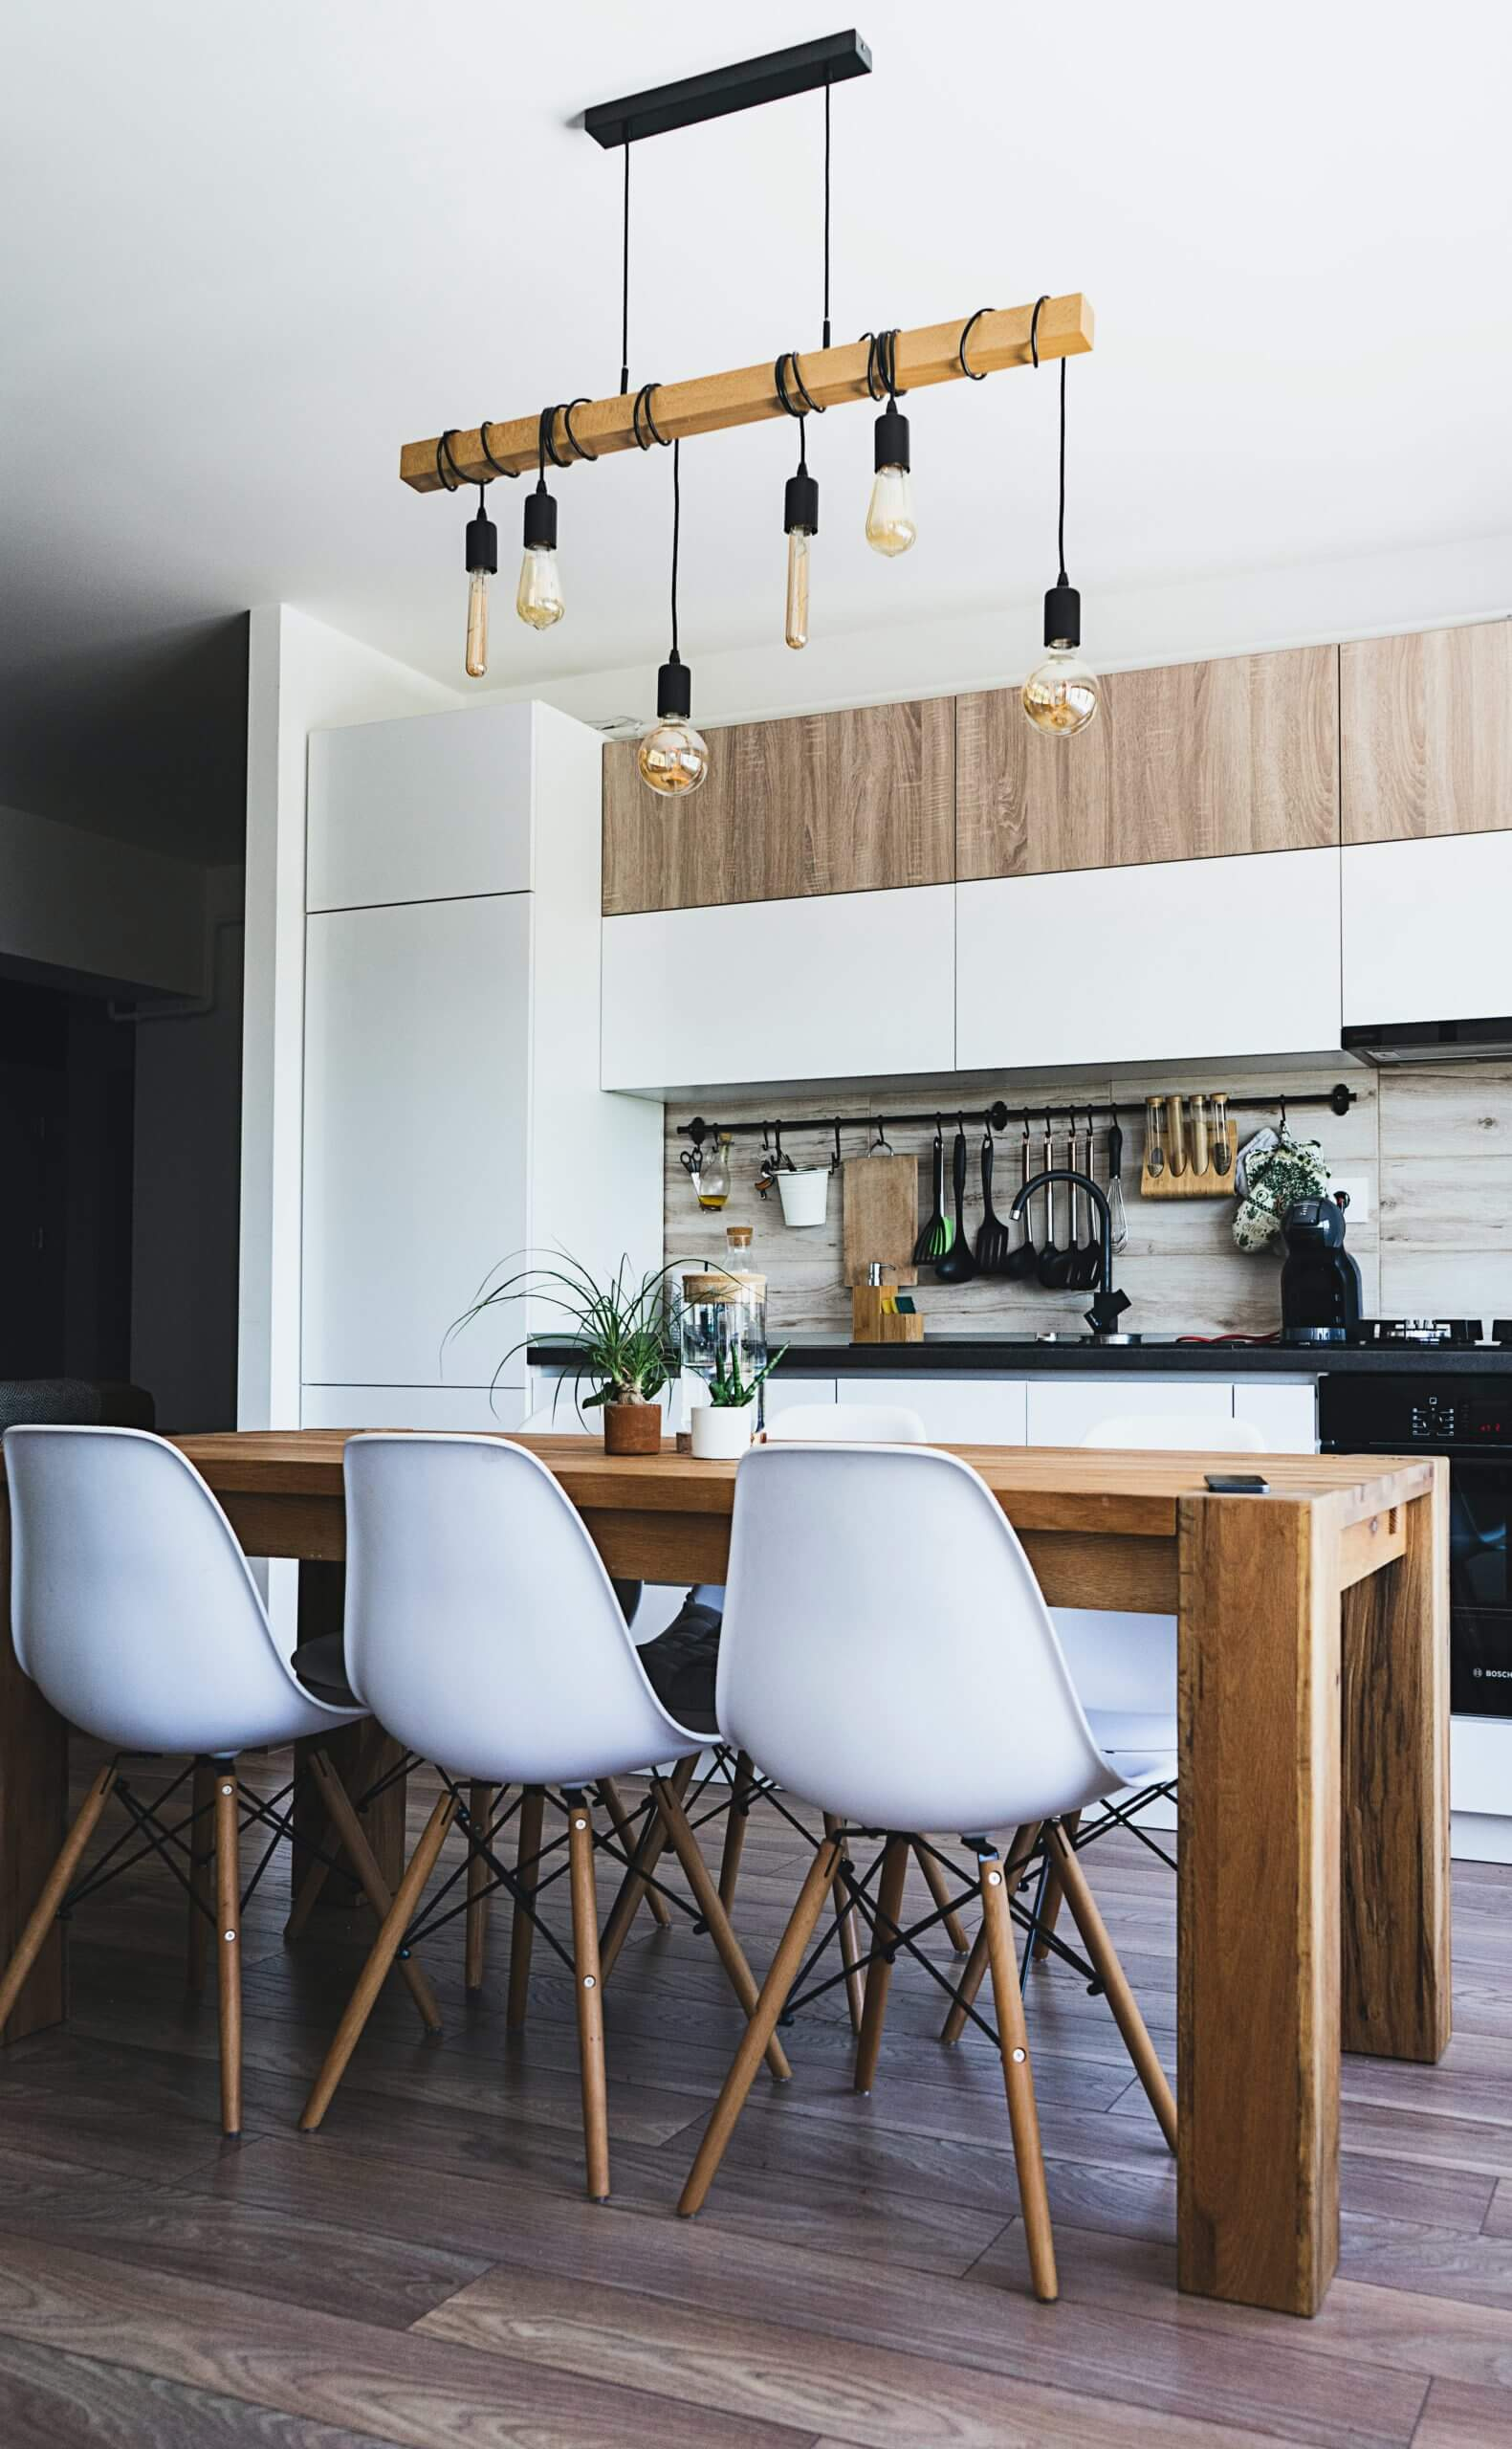 full kitchen build in Montreal